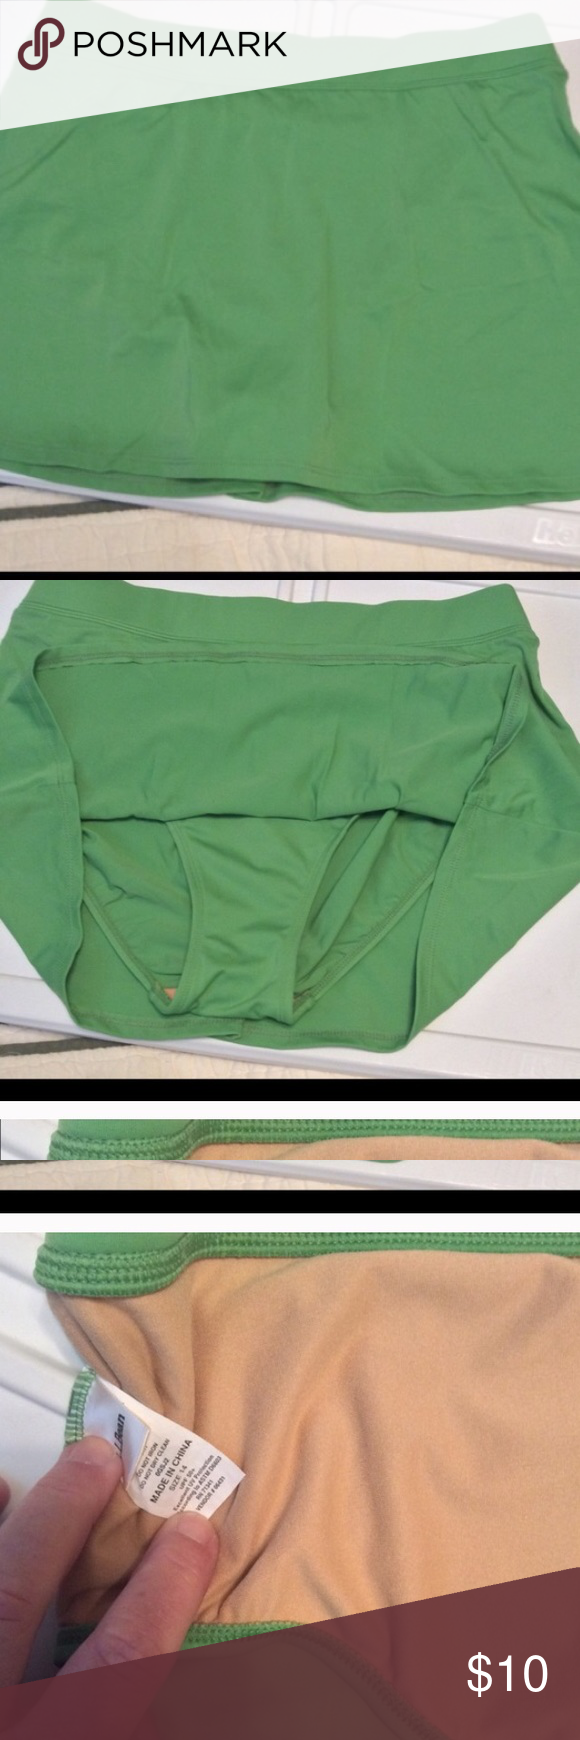 Never worn Lands End swim skirt☘️ Never worn- light green swim skirt, lands end, size 14- purchased on posh- fits tighter than expected- perfect condition and well made! Lands' End Swim